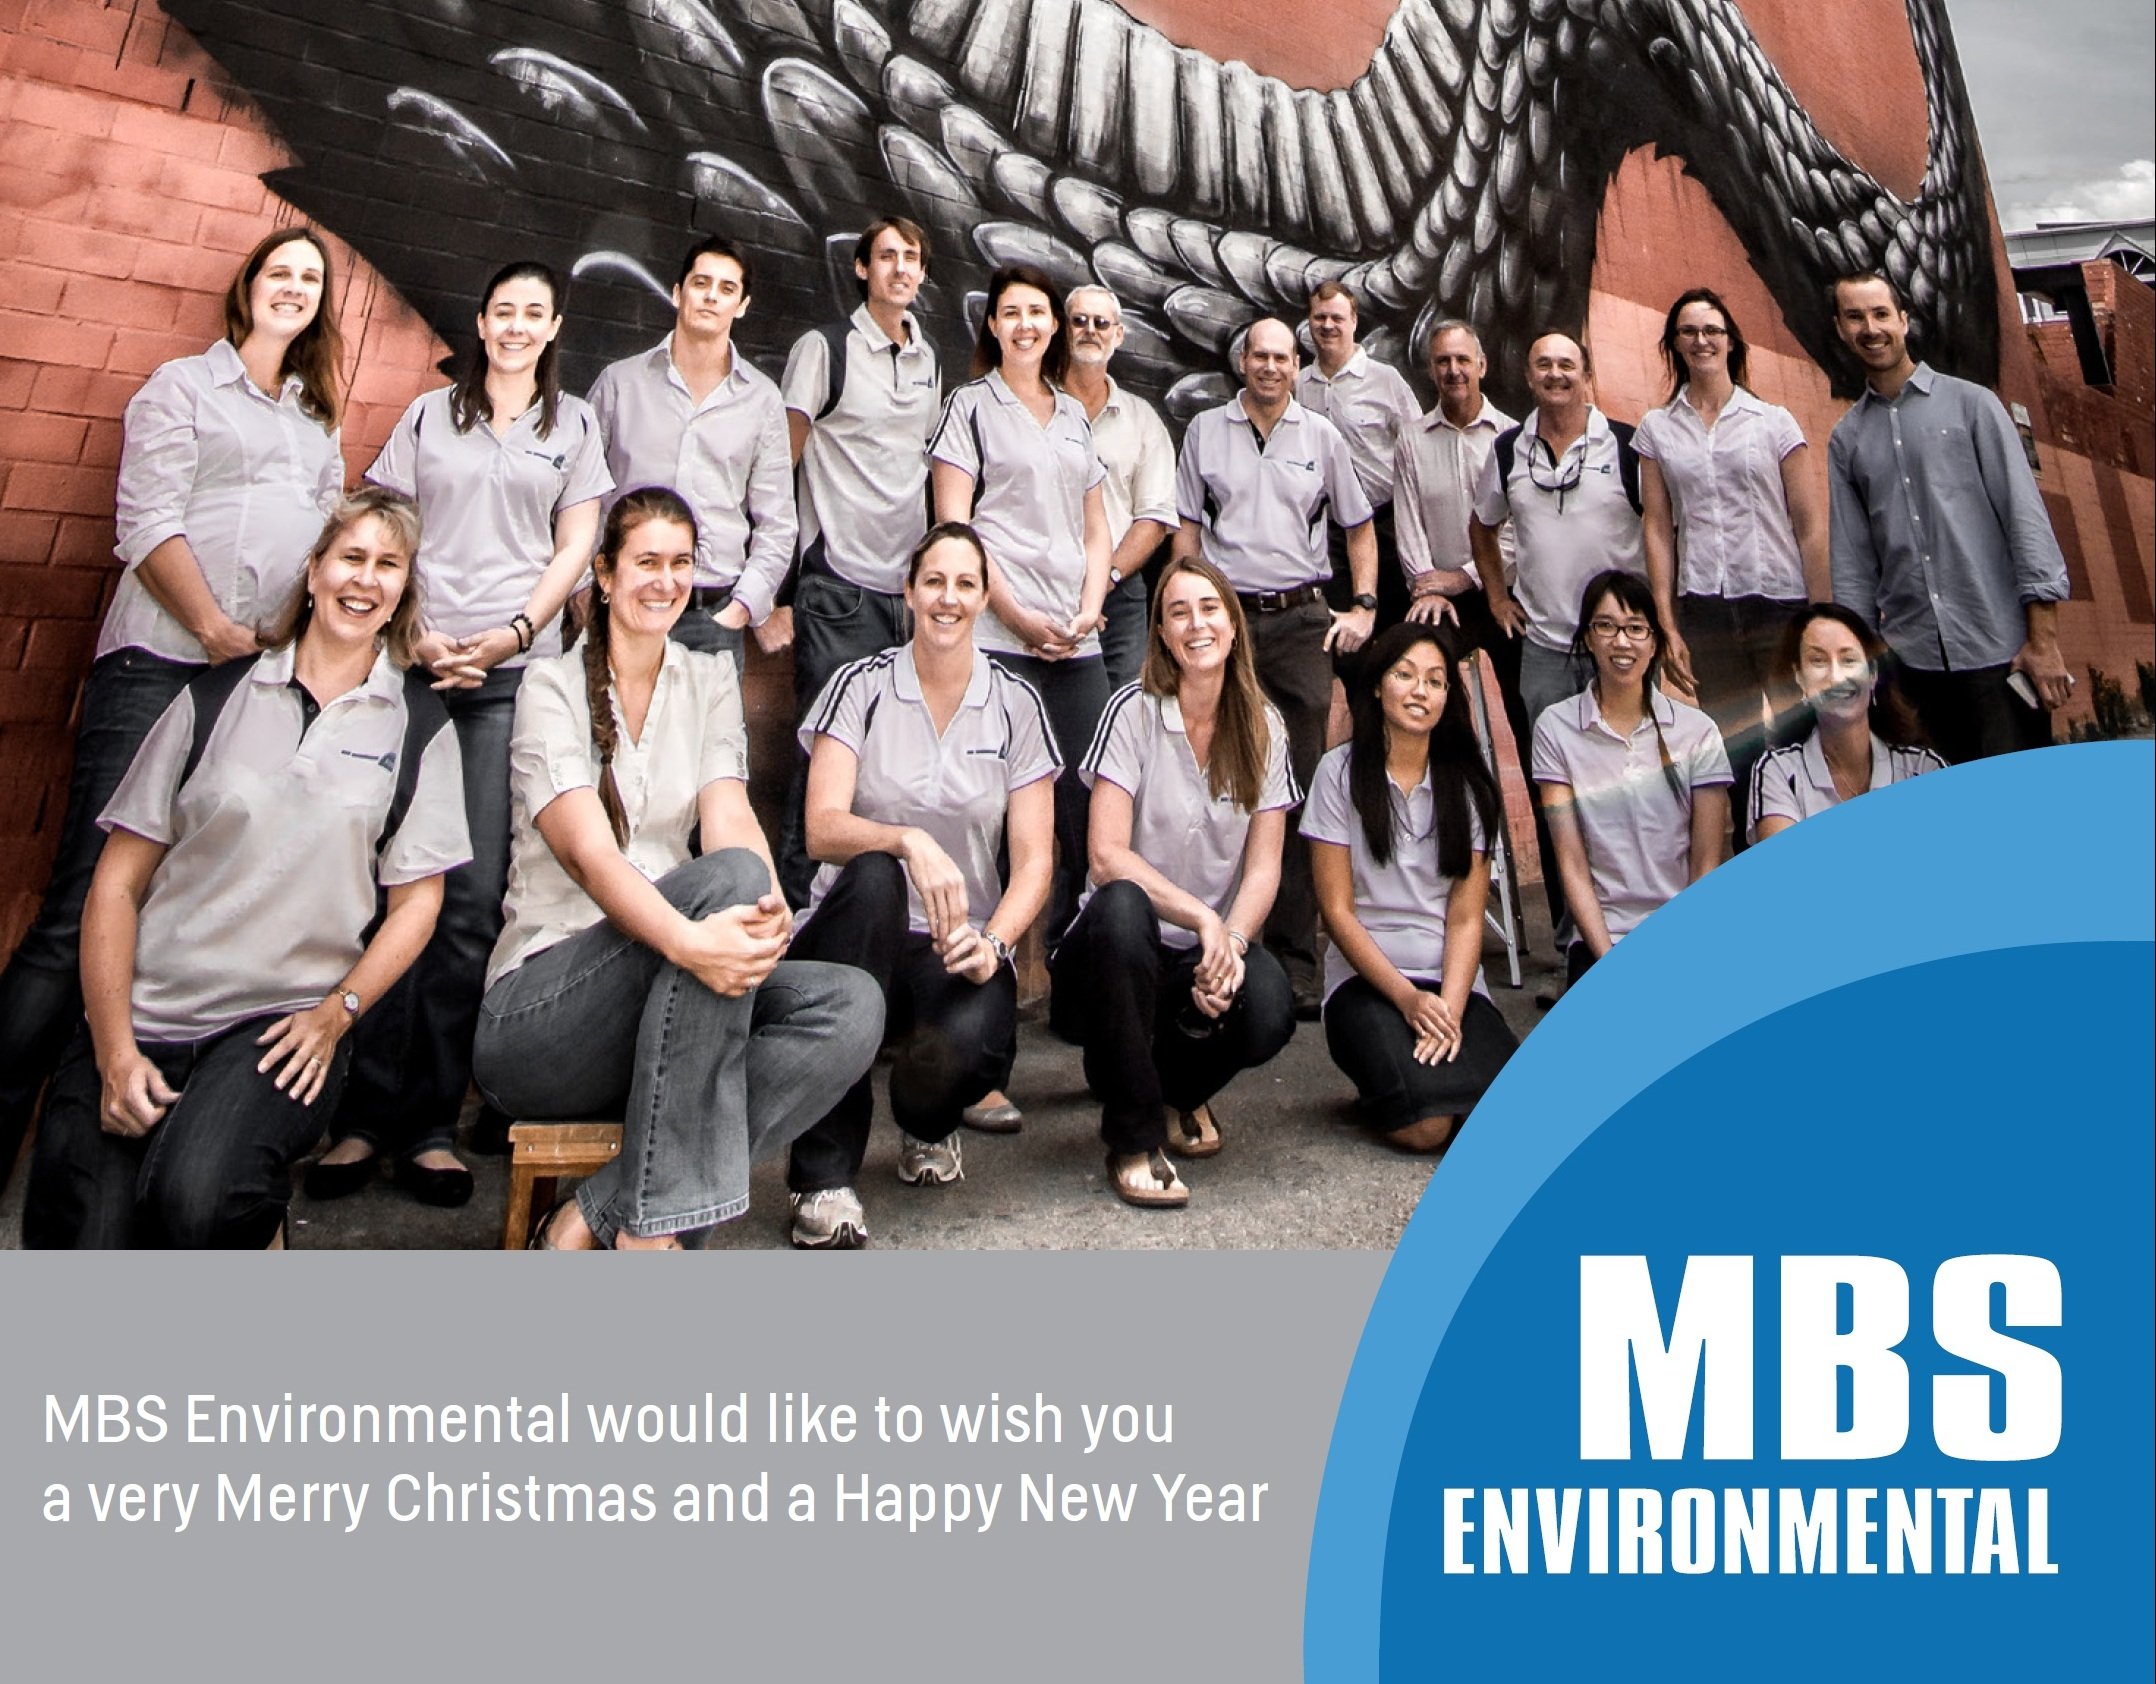 Merry Christmas from MBS!